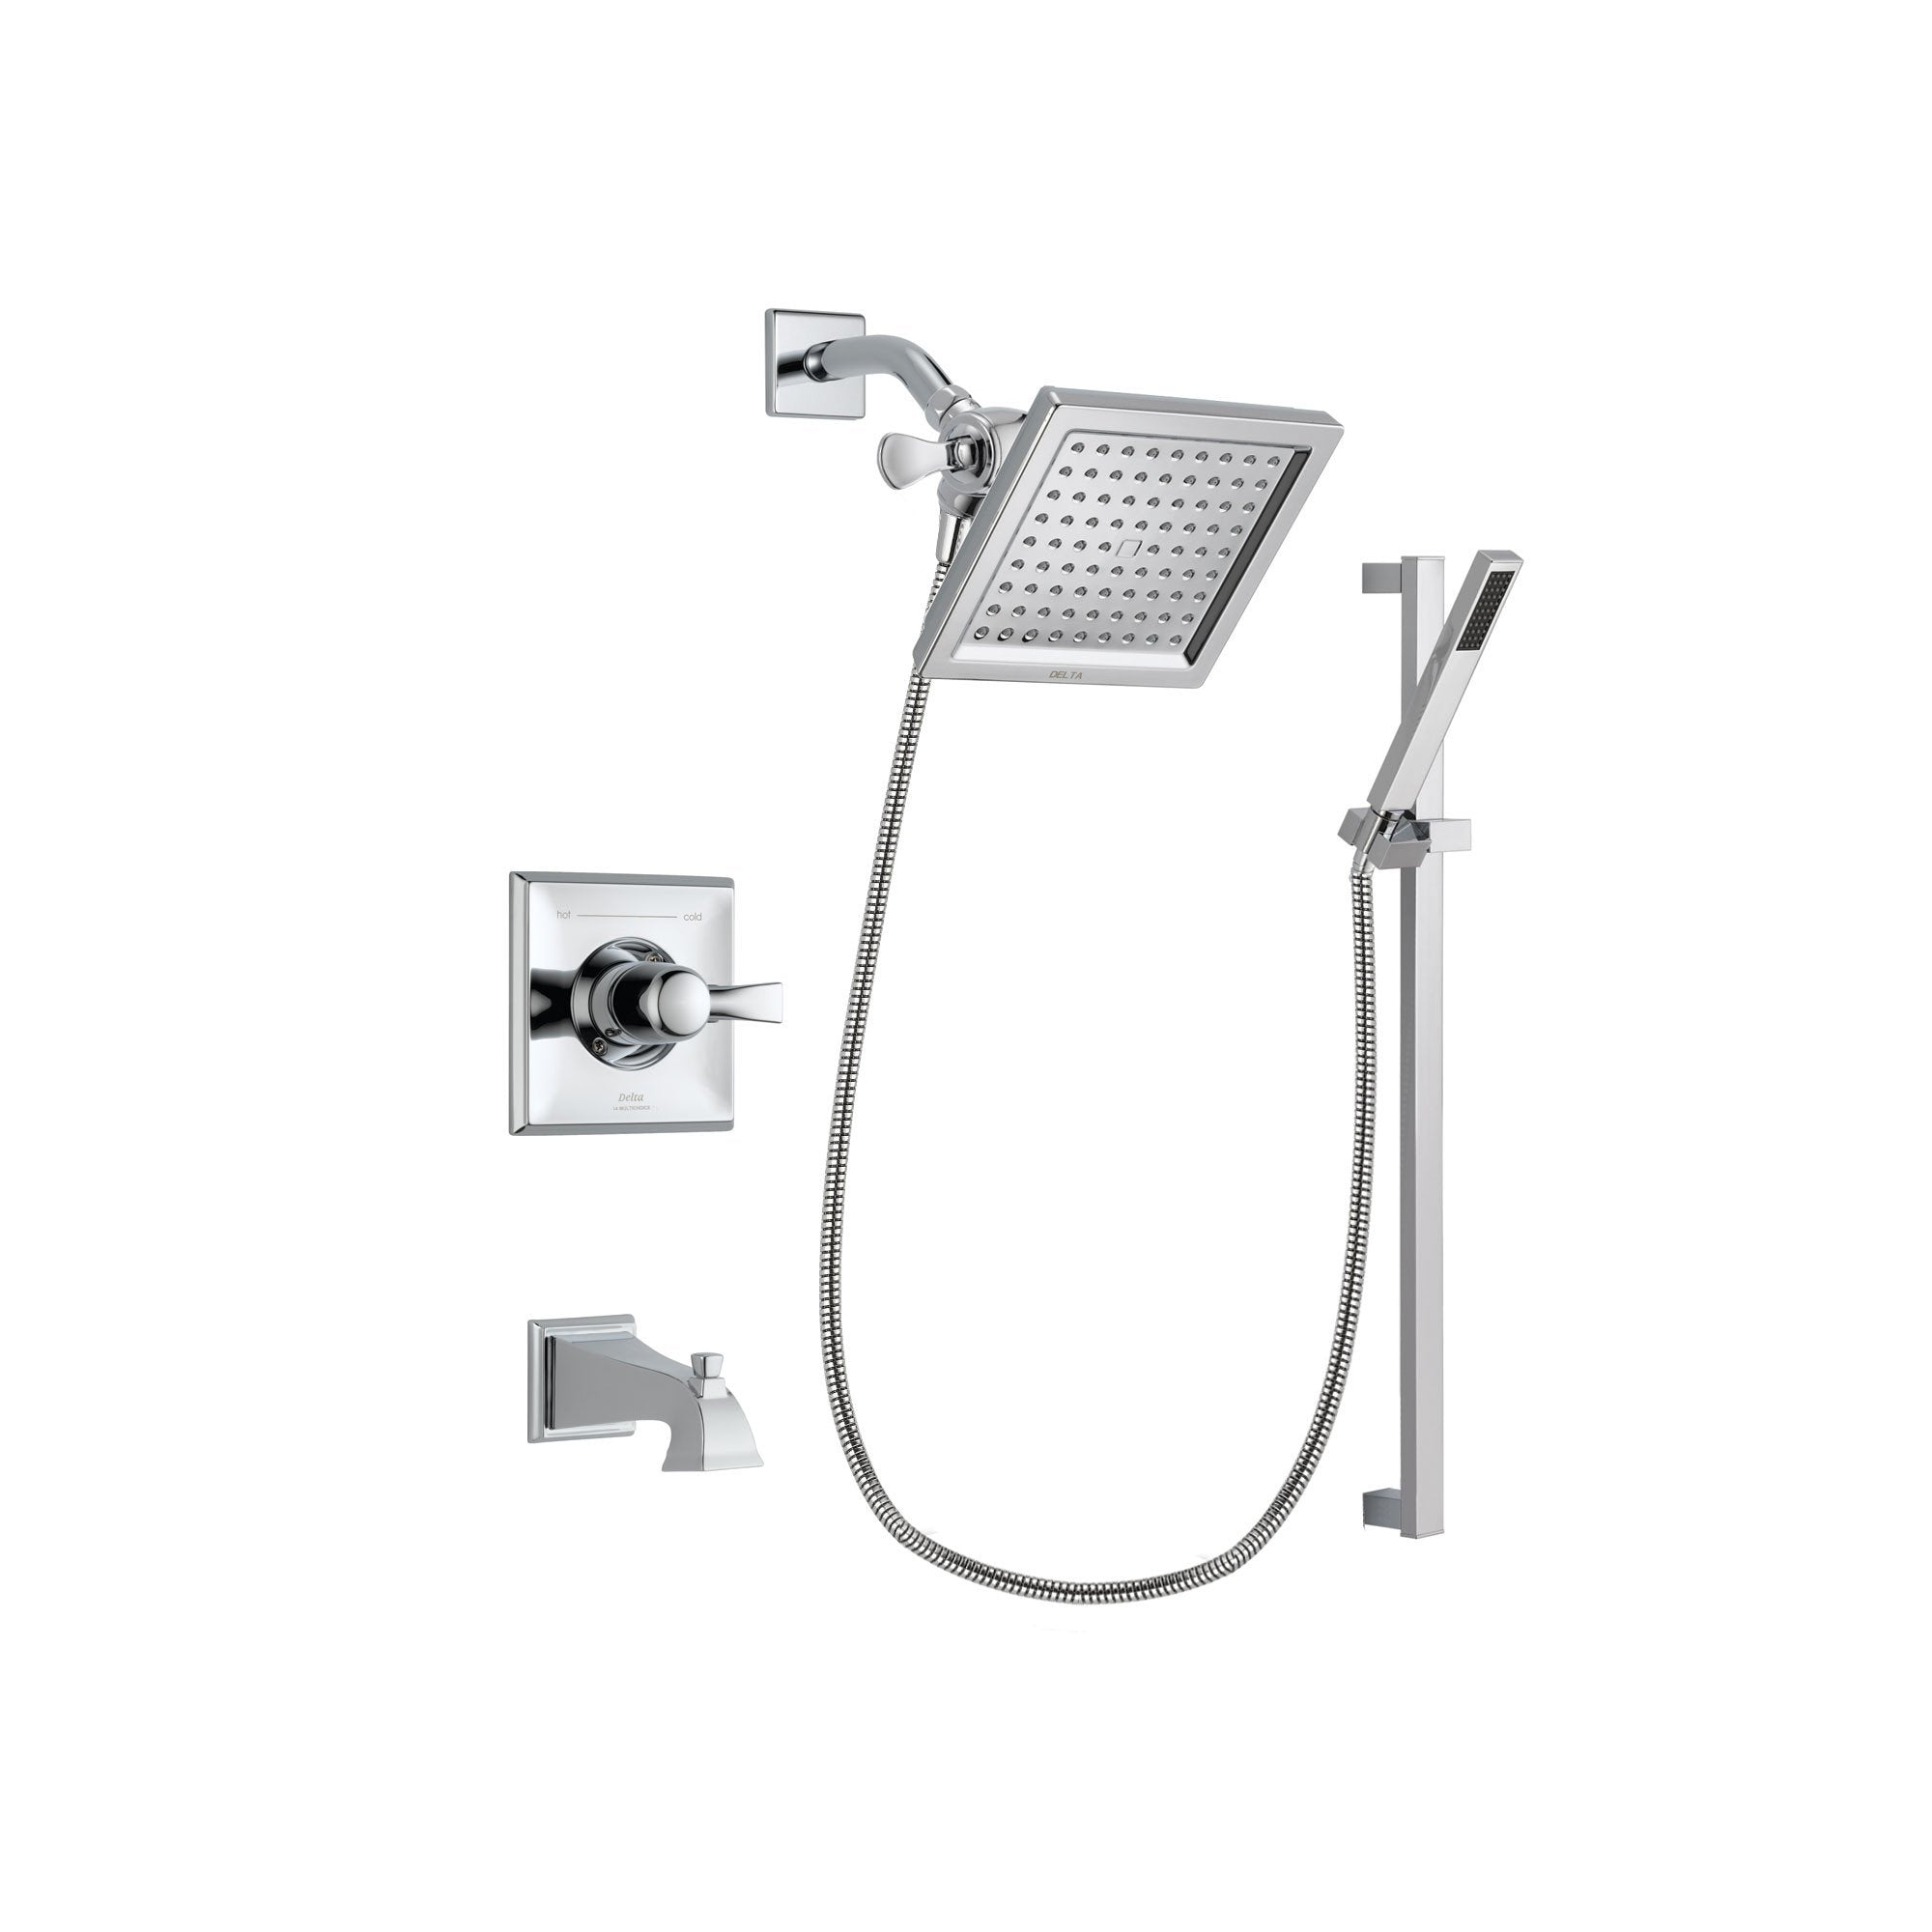 Delta Dryden Chrome Tub and Shower Faucet System Package w/ Hand Shower DSP0215V